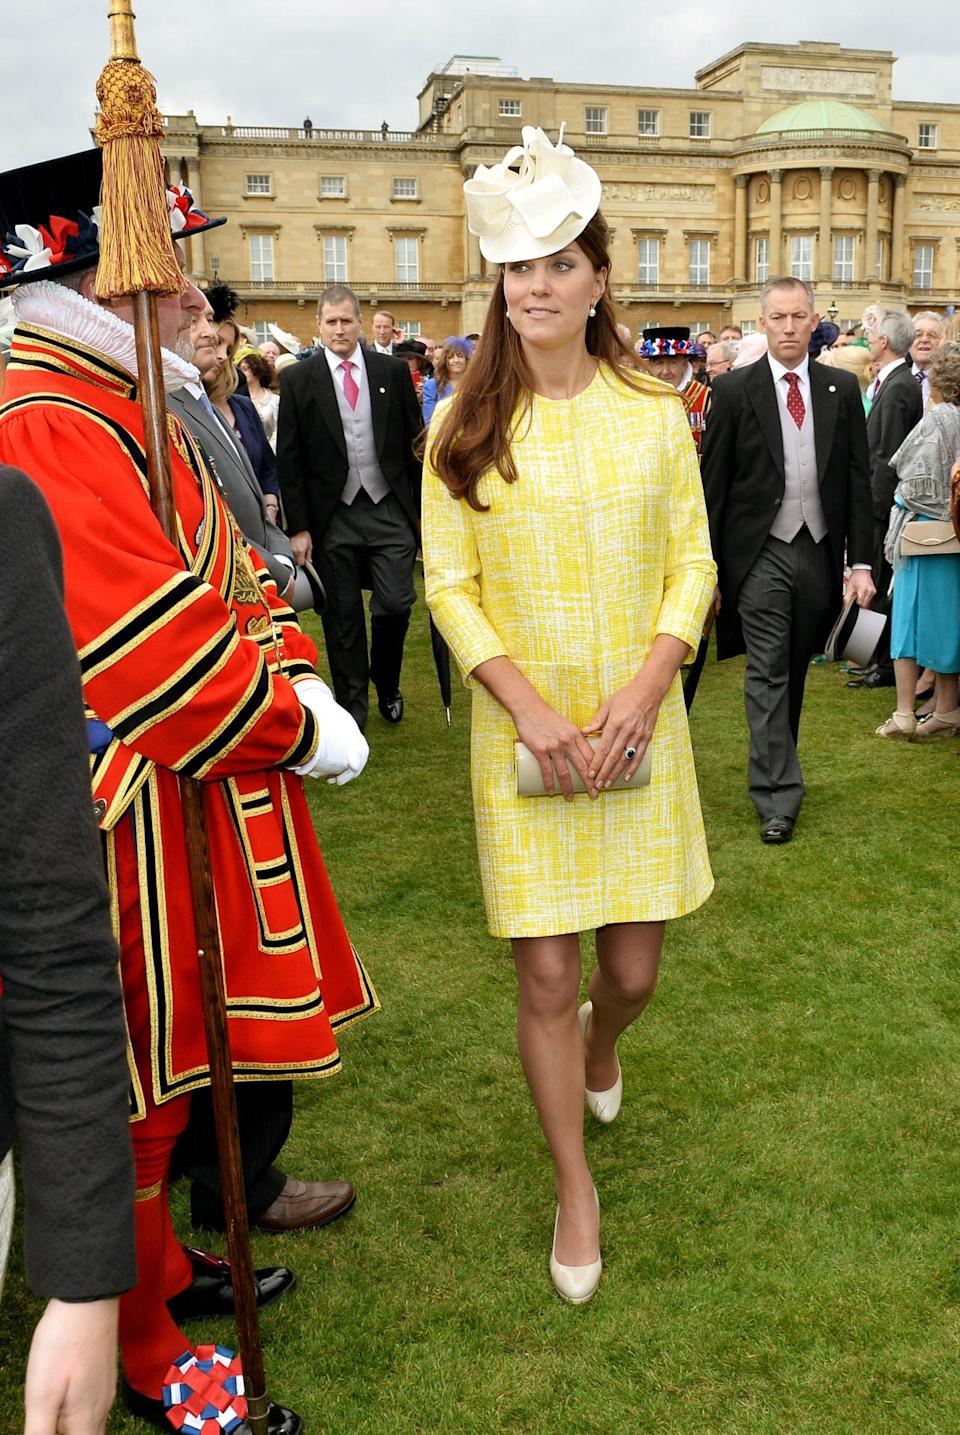 <p>Kate attended the Queen's Garden Party in a sunny yellow dress from Emilia Wickstead. She carried a beige leather Russell & Bromley clutch and finished with a white hat from Jane Corbett. </p><p><i>[Photo: PA]</i></p>